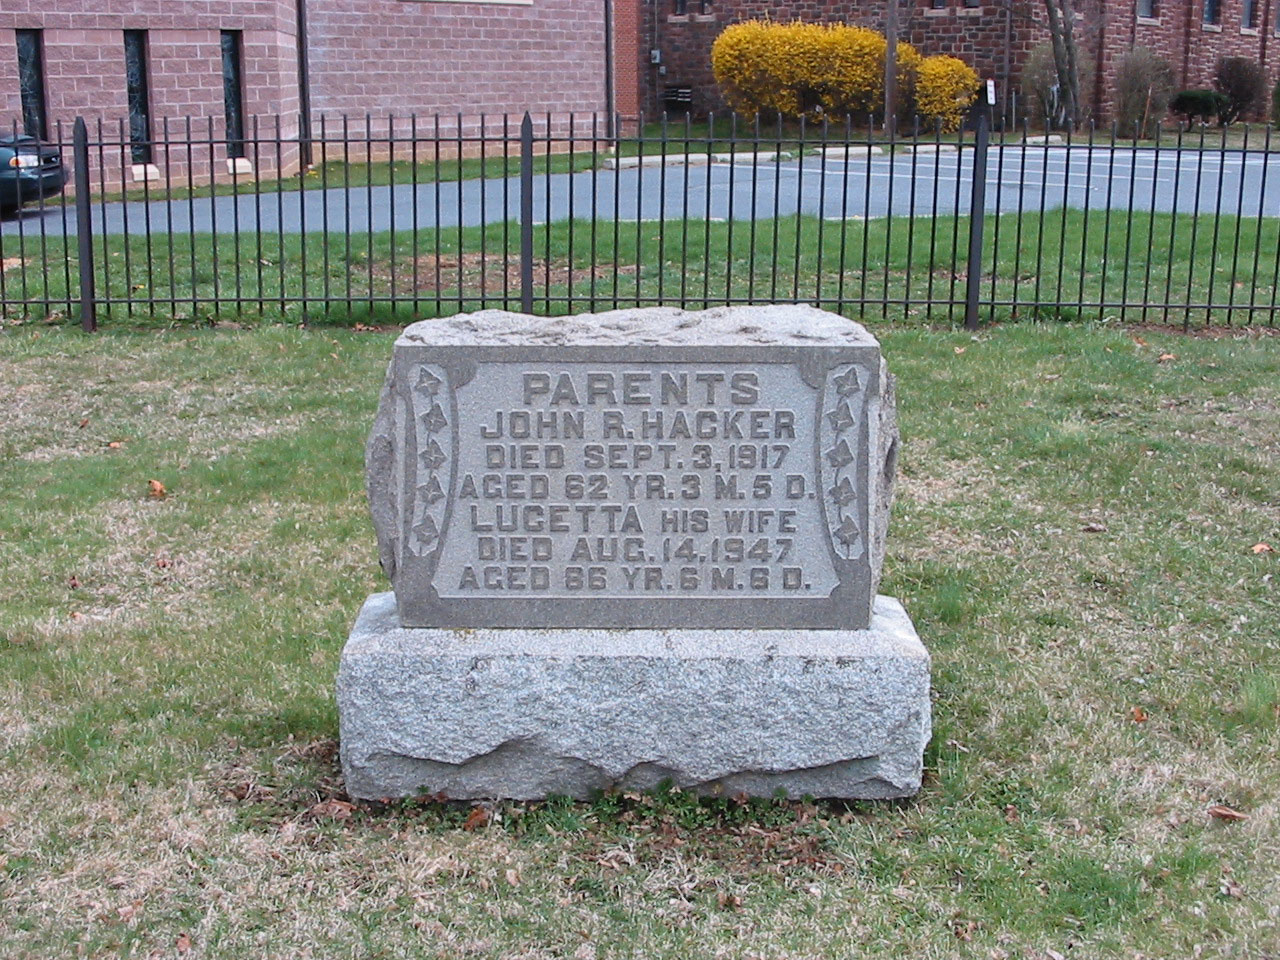 Gravestone of John R. Hacker (1854-1917) and Lucetta Hahn (1862-1947)